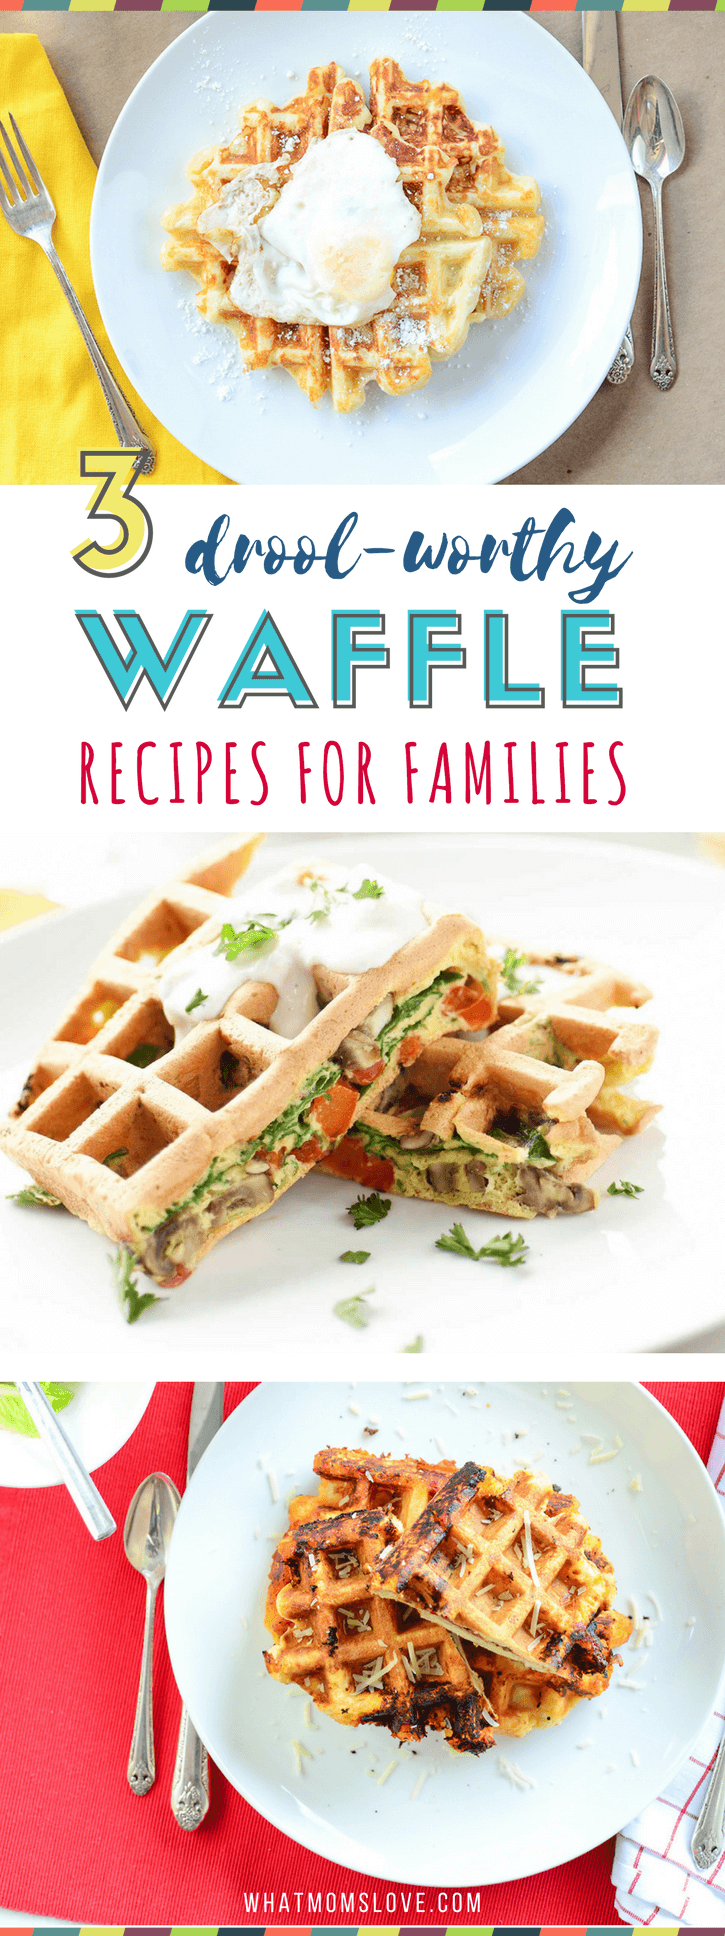 Savory Waffle Recipes for Dinner | Family Friendly Dinner Ideas | Easy, homemade waffle recipes that go beyond the buttermilk or Belgian! Fun meal ideas for kids made in your waffle iron - customizable for picky eaters!